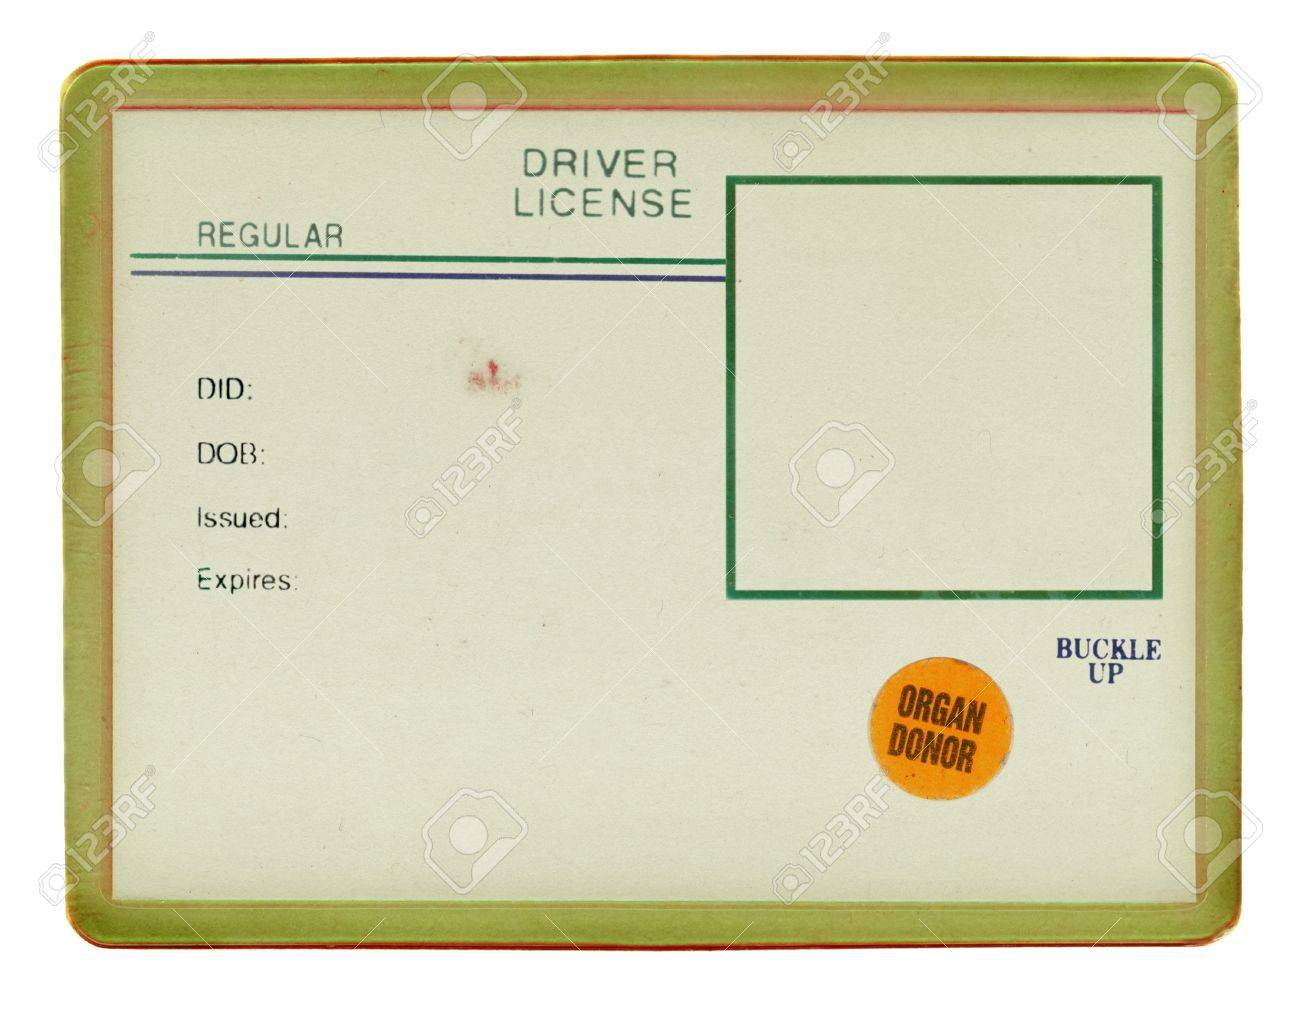 Blank Drivers License With Visible Old Paper Texture Scratchs Stock Photo